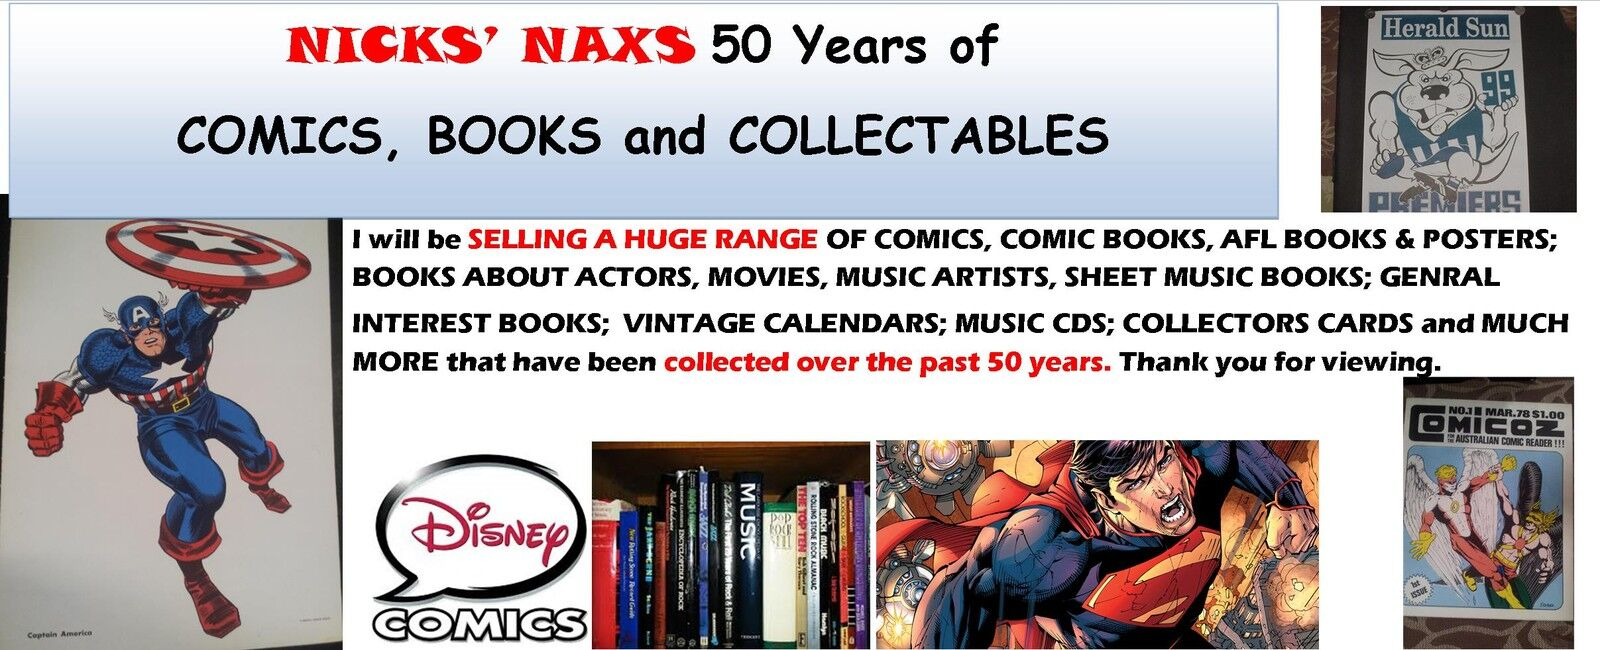 Nicks'Nax Comics Books Collectables